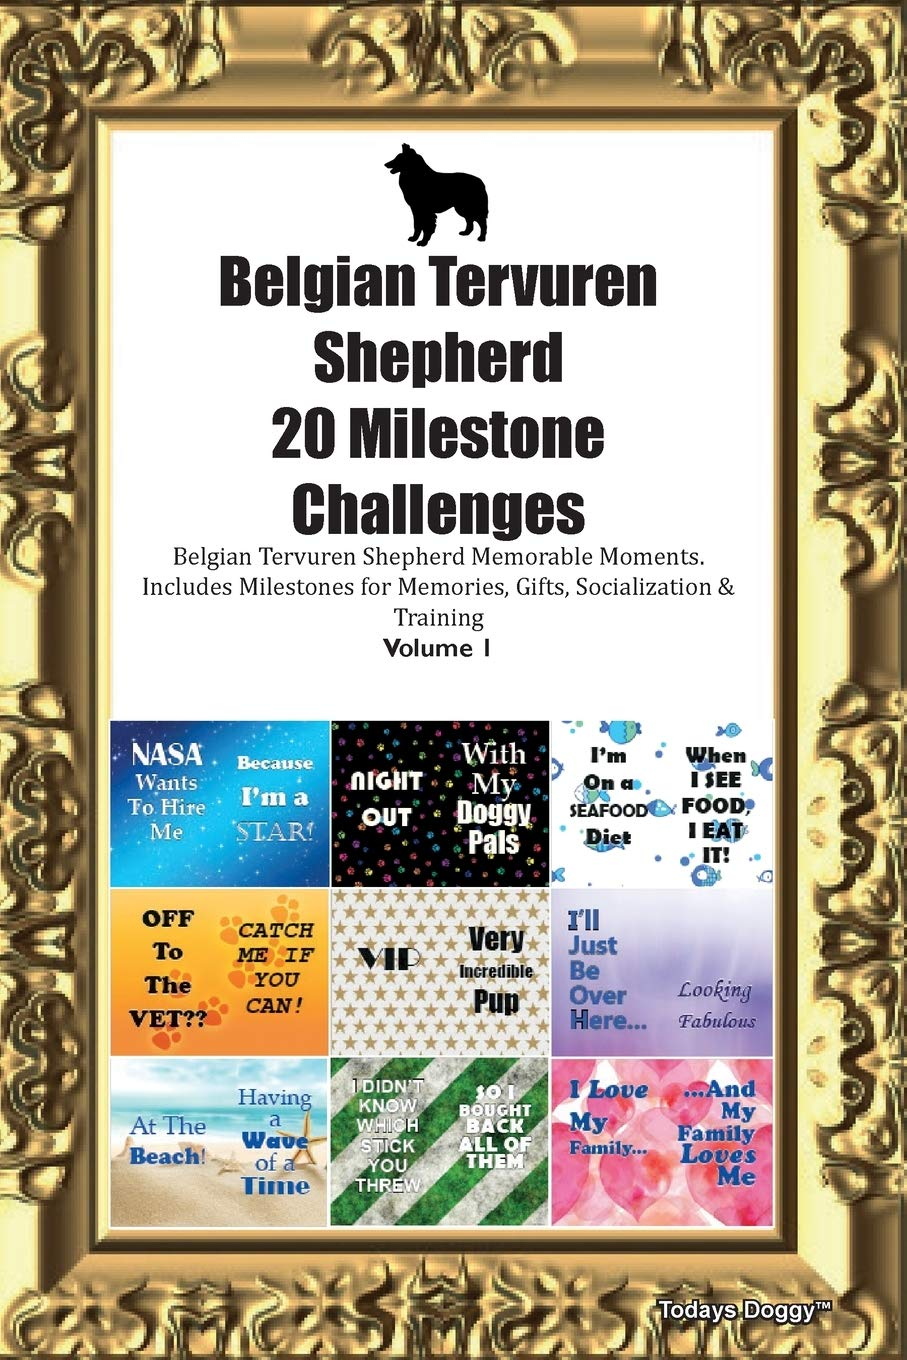 Belgian Tervuren Shepherd 20 Milestone Challenges Belgian Tervuren Shepherd Memorable Moments.Includes Milestones for Memories, Gifts, Socialization & Training Volume 1